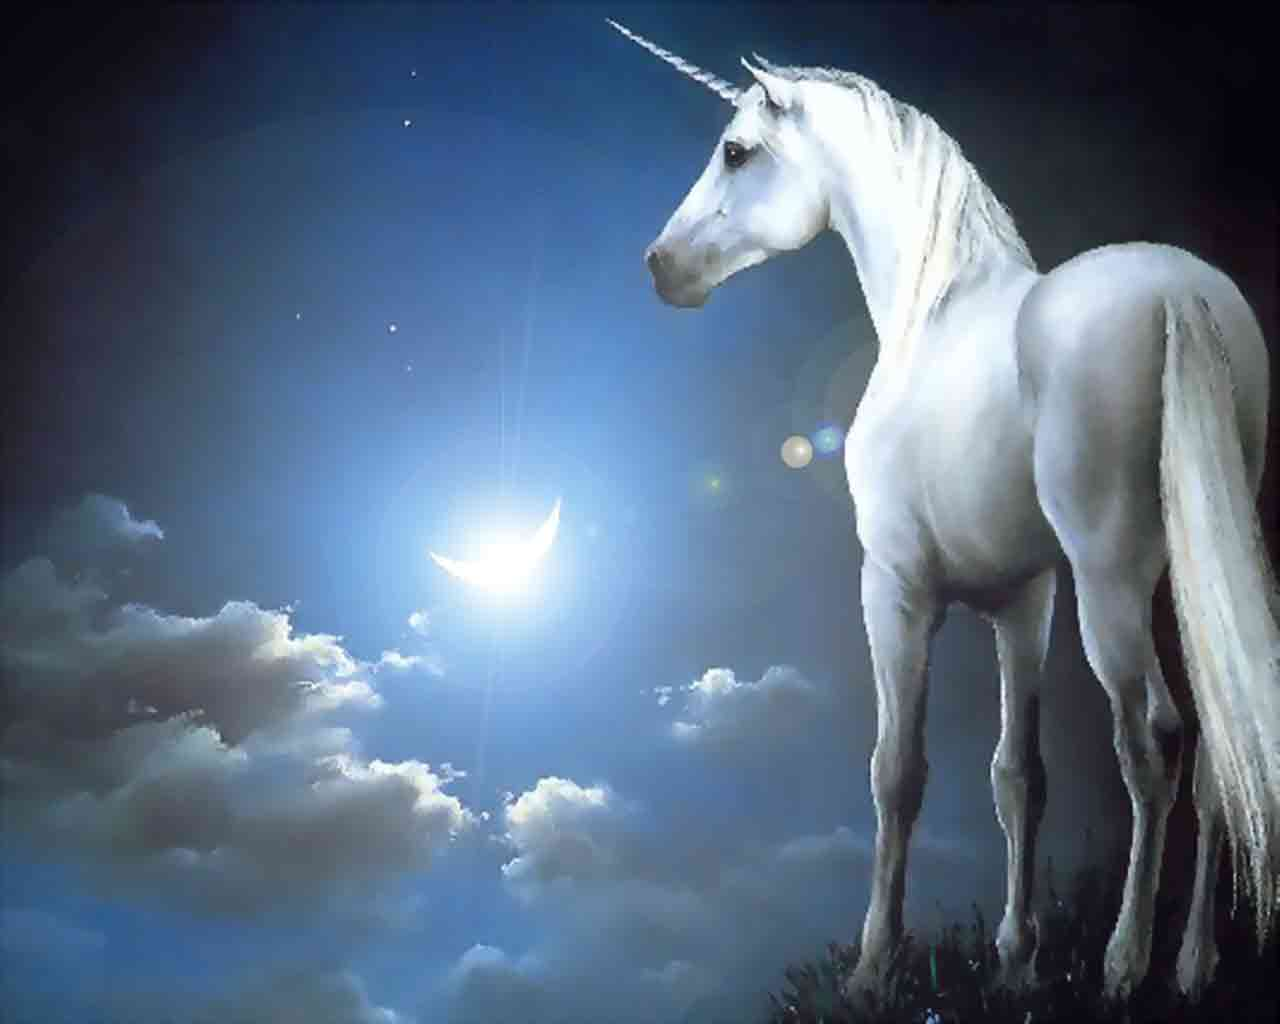 Hd wallpaper unicorn - Free Wallpapers Celestial Unicorn Wallpaper